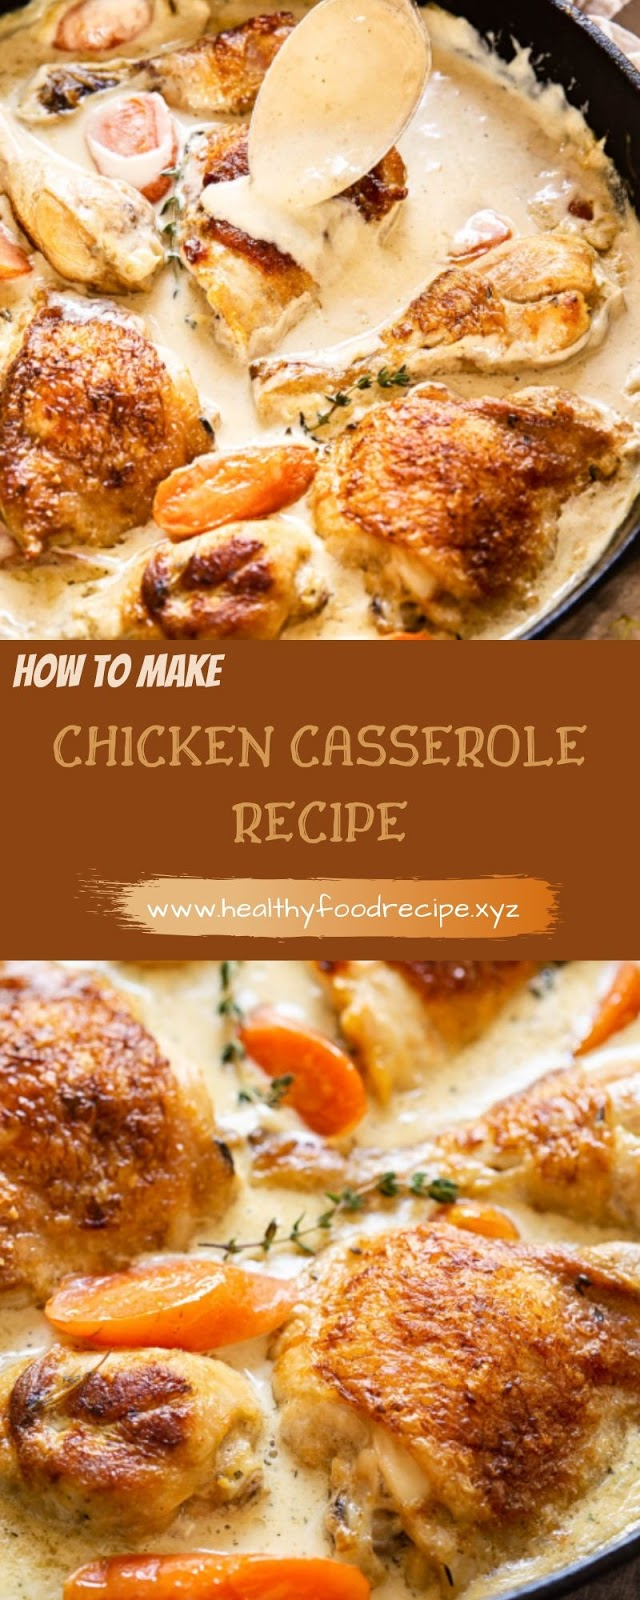 HOW TO MAKE CHICKEN CASSEROLE RECIPE